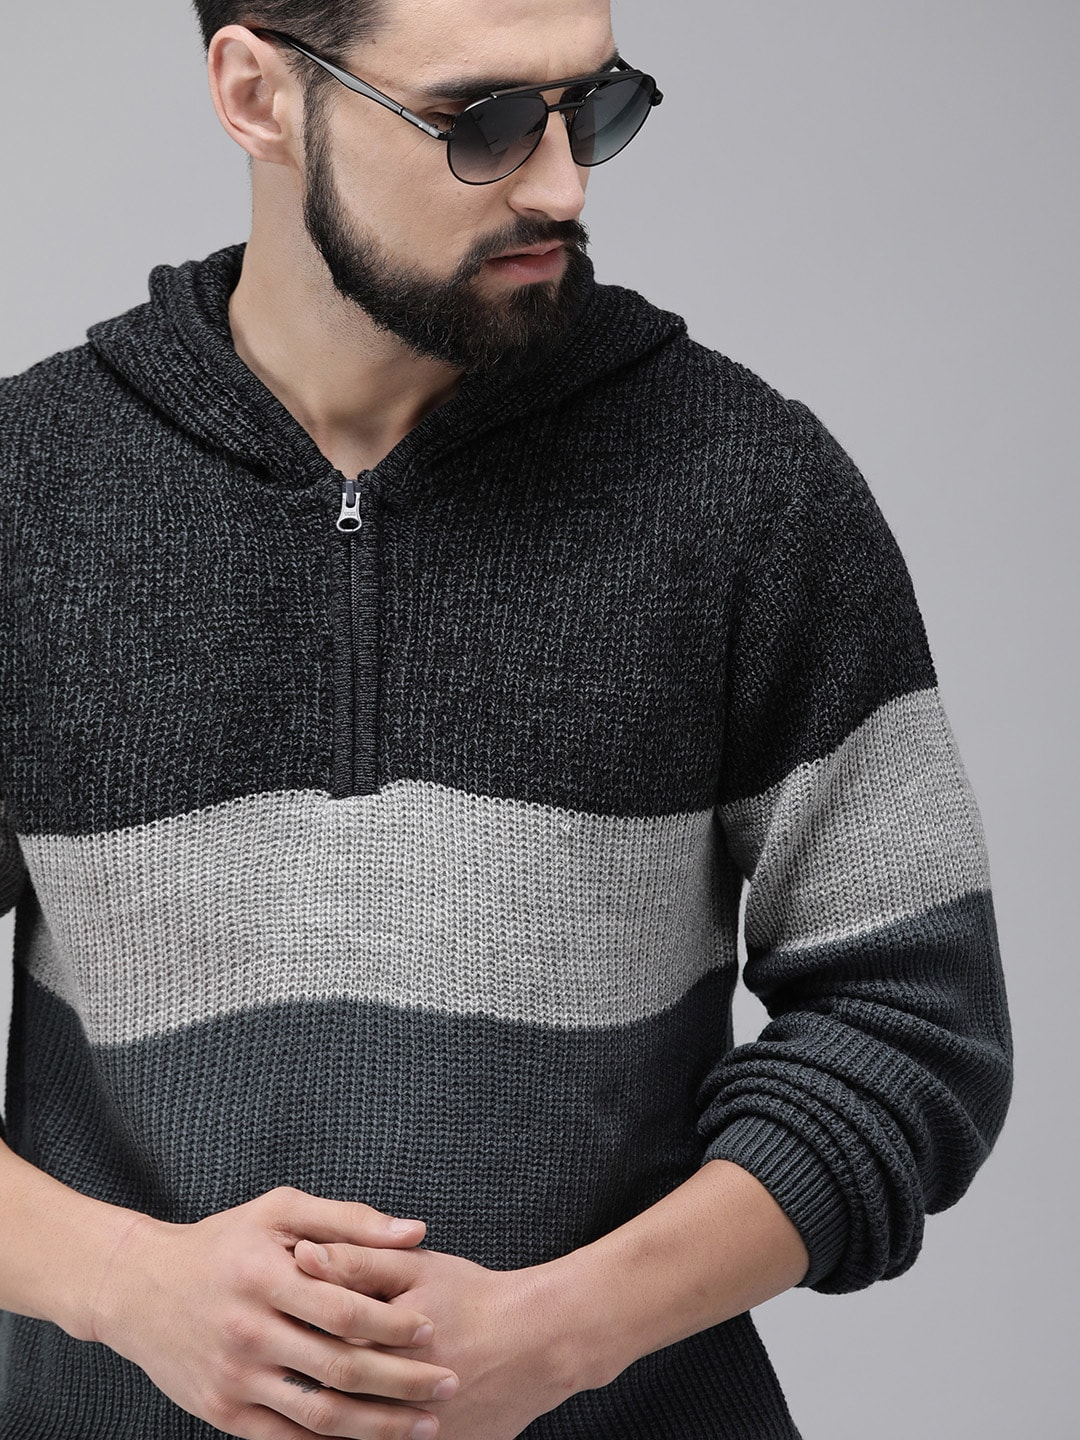 Roadster Men Black & Charcoal Grey Colourblocked Pullover Hooded Sweater-10111329